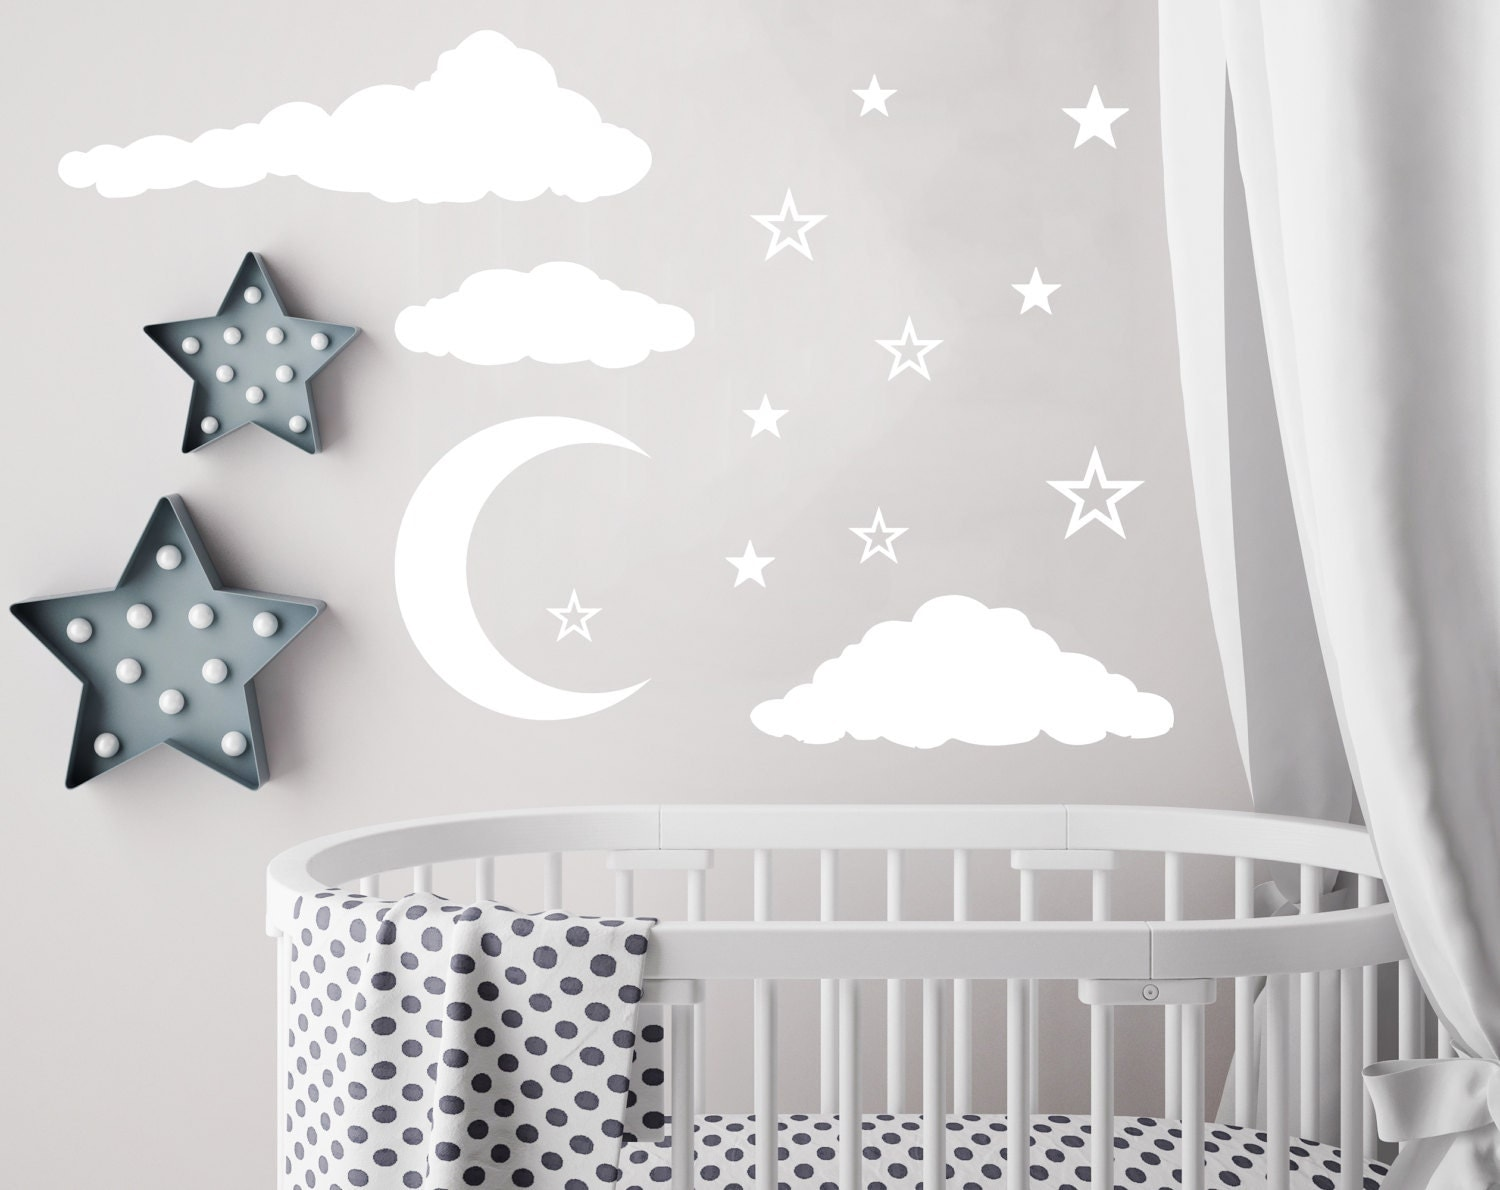 Cloud wall decal moon and stars decals nursery decor night sky description the listing is for cloud wall decal moon and stars decals nursery amipublicfo Images